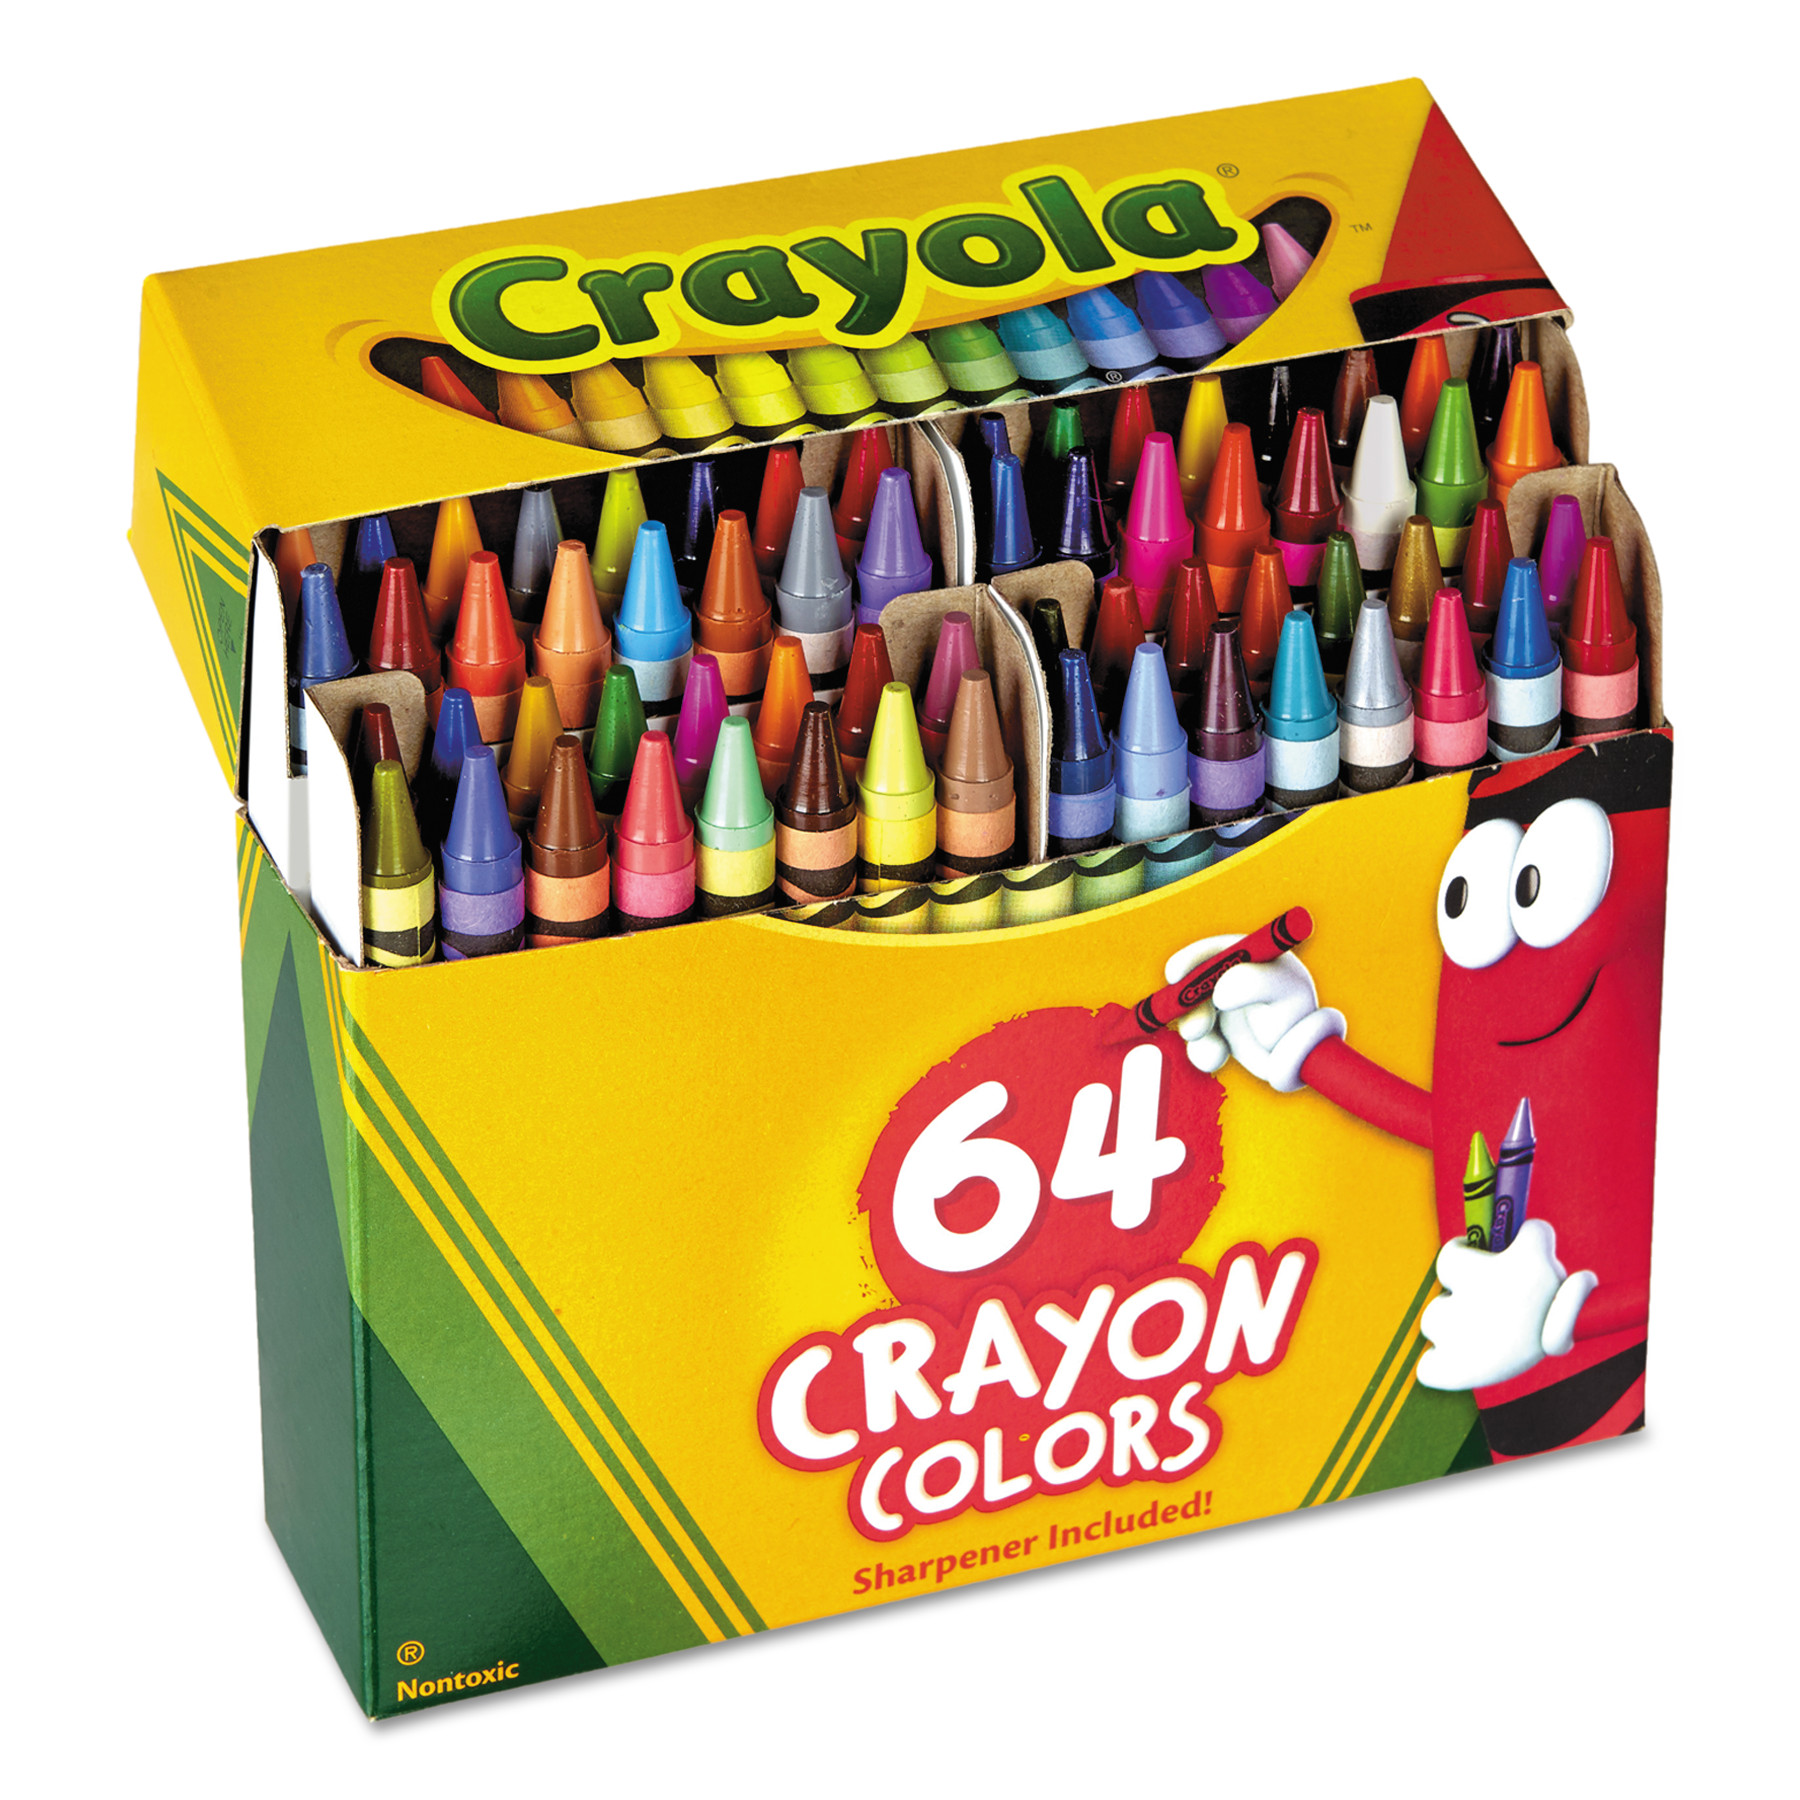 Crayola 64 Count Crayons with Built-in Sharpener